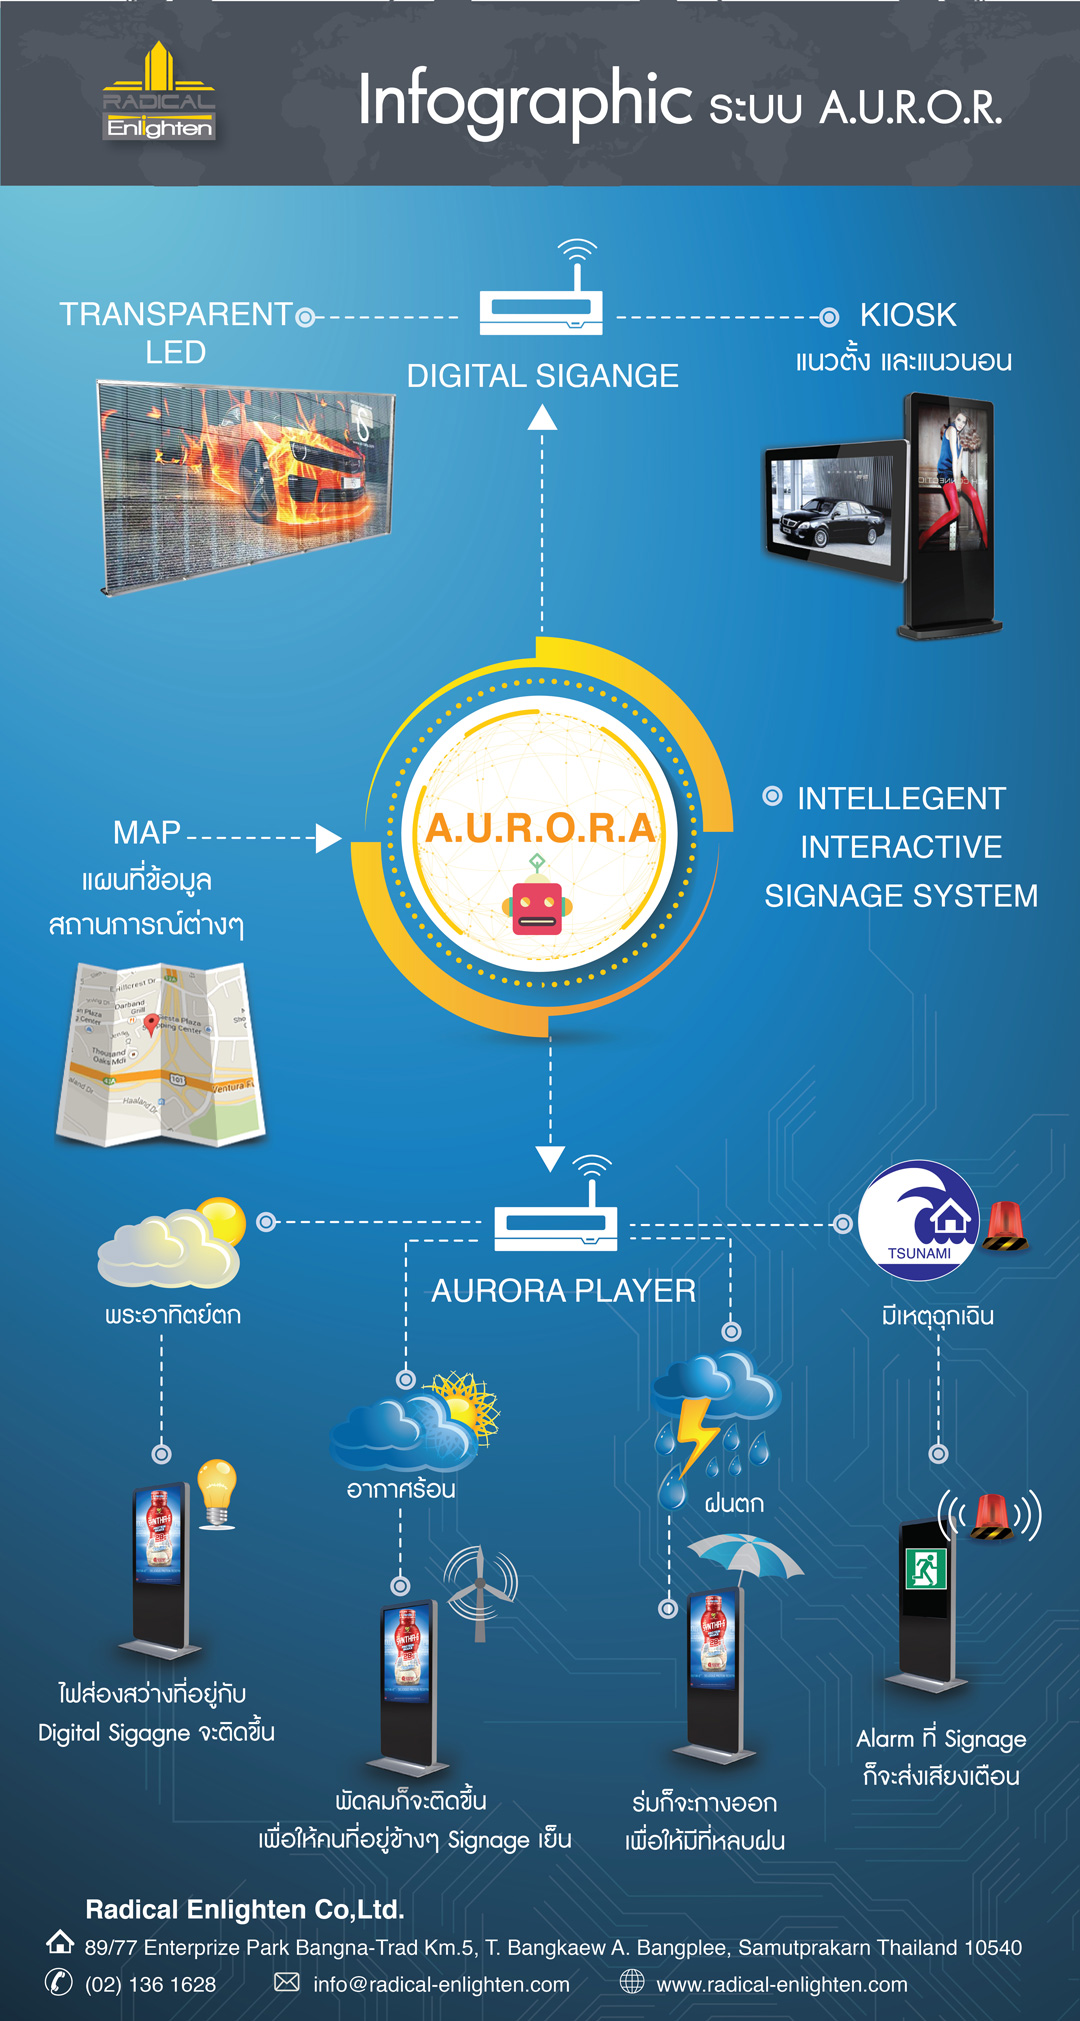 Radical Enlighten A.U.R.O.R.A IPTV & Digital Signage